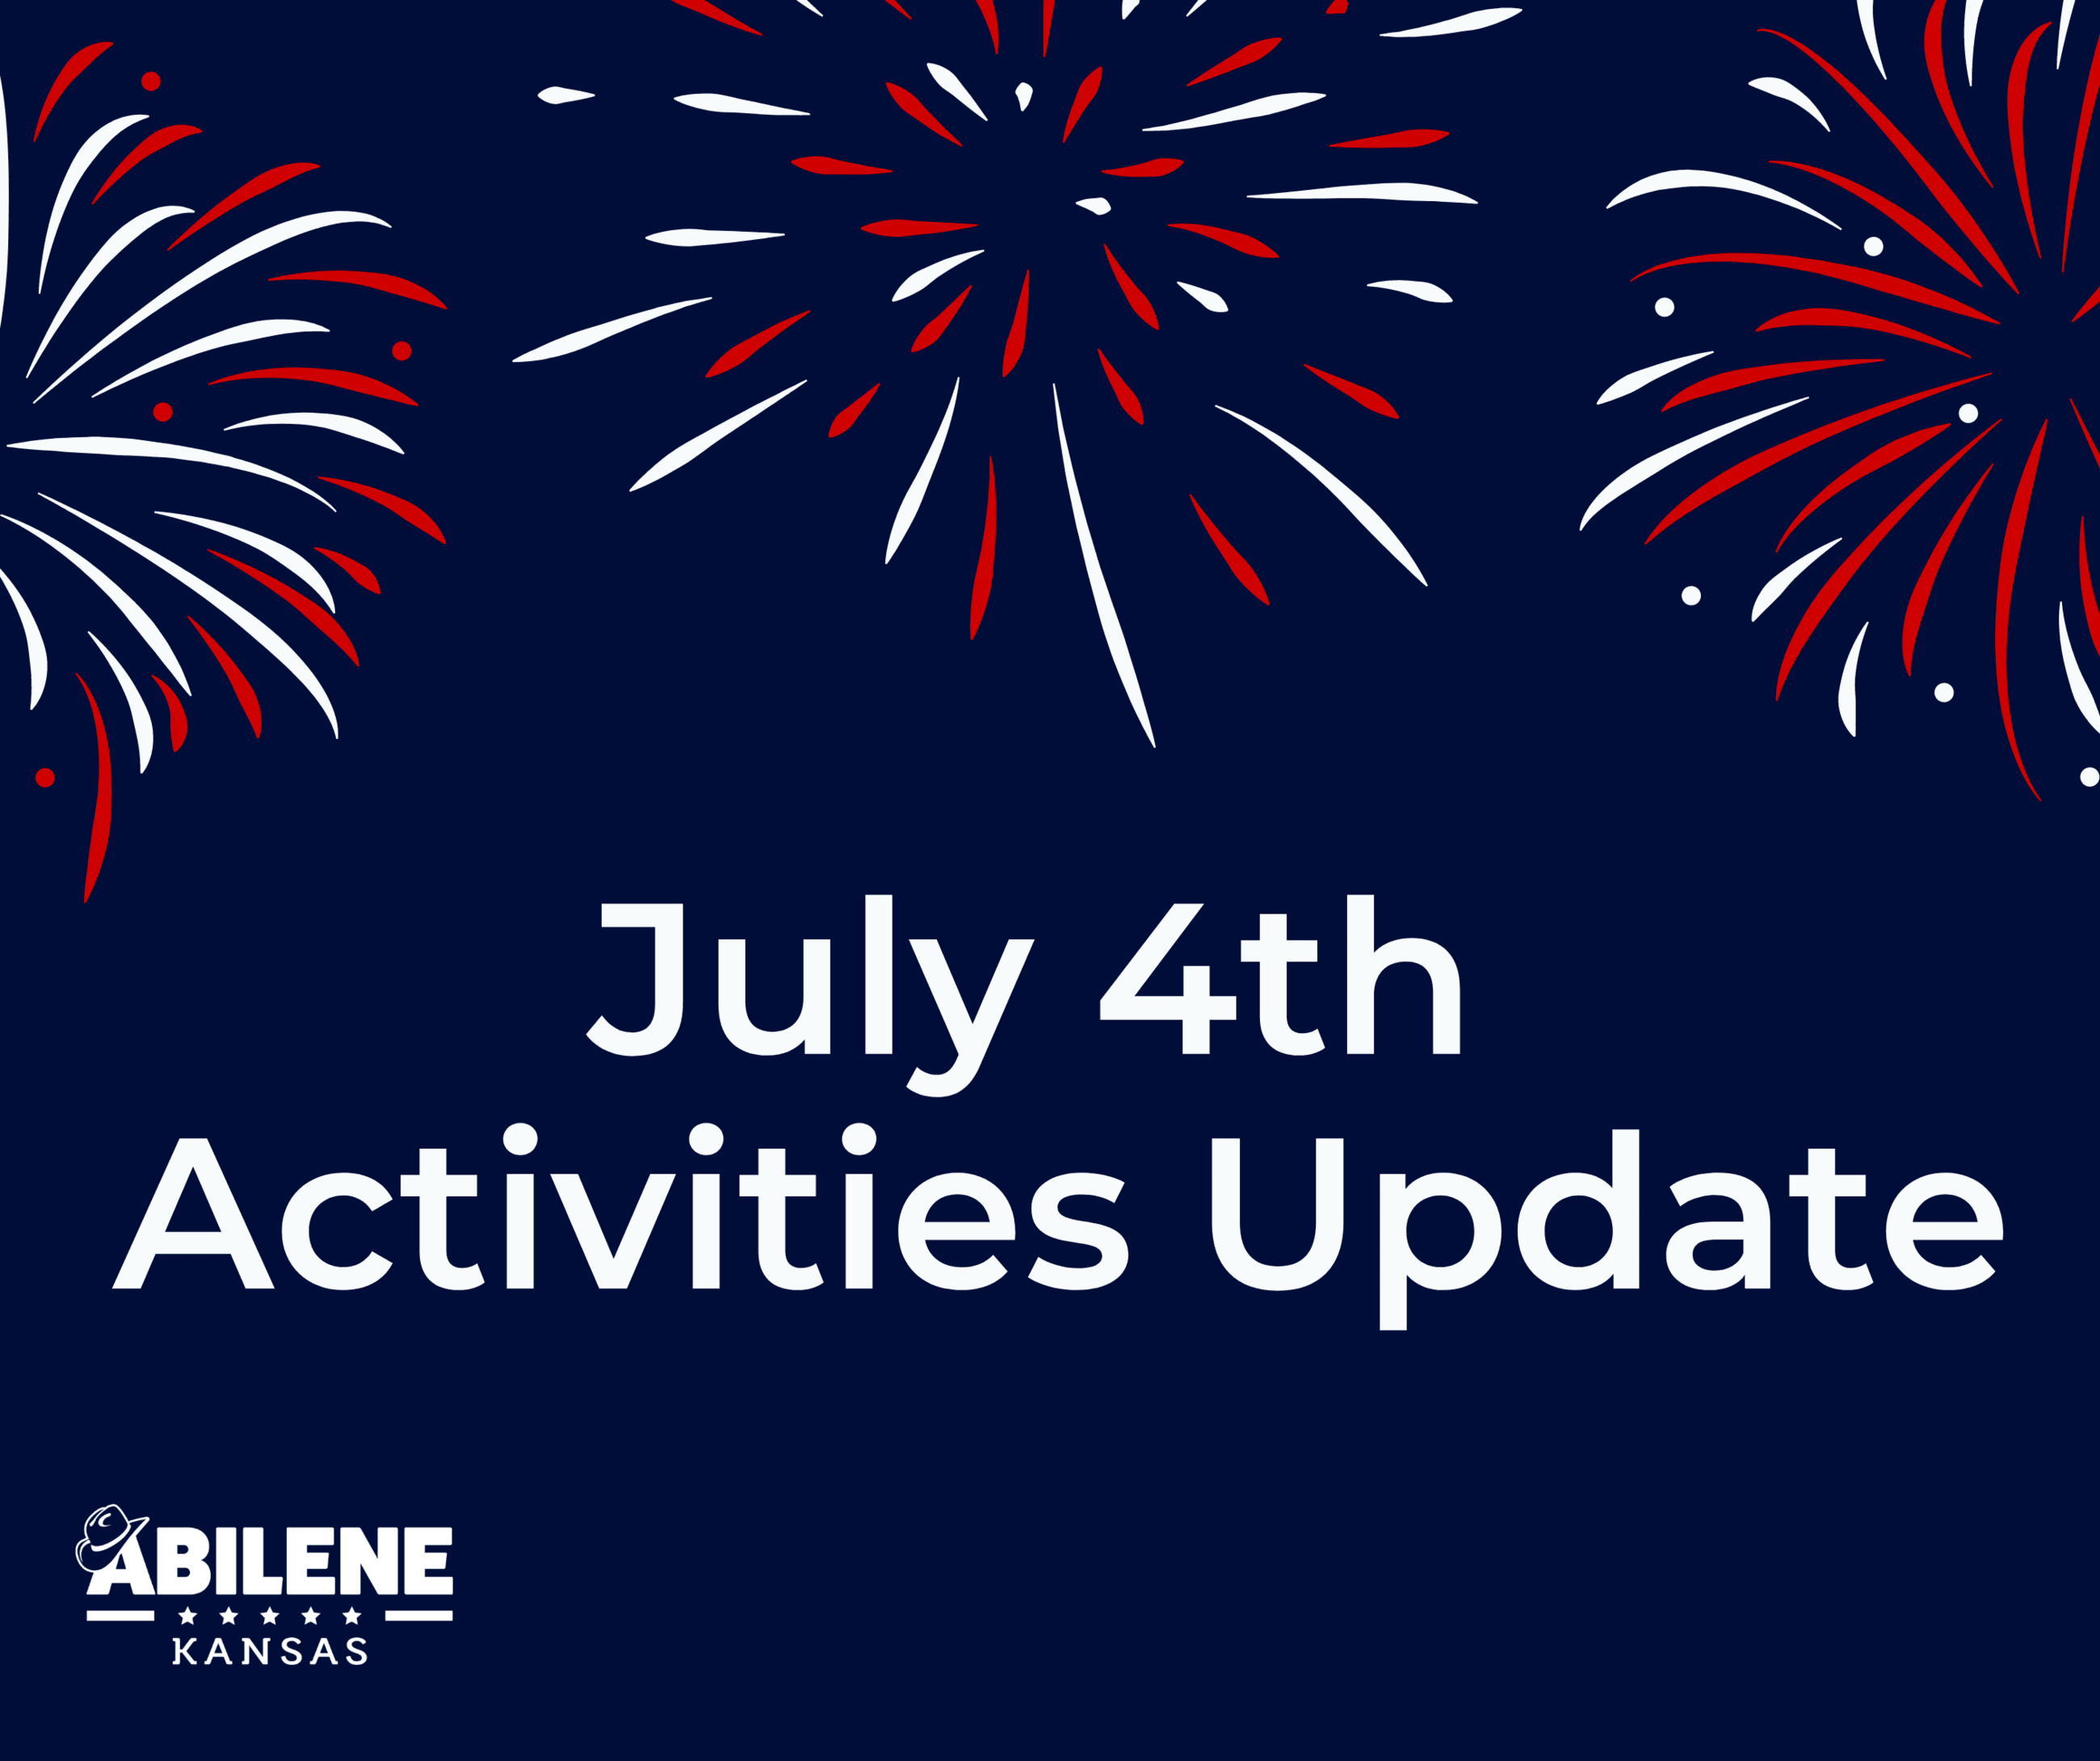 July 4th Update